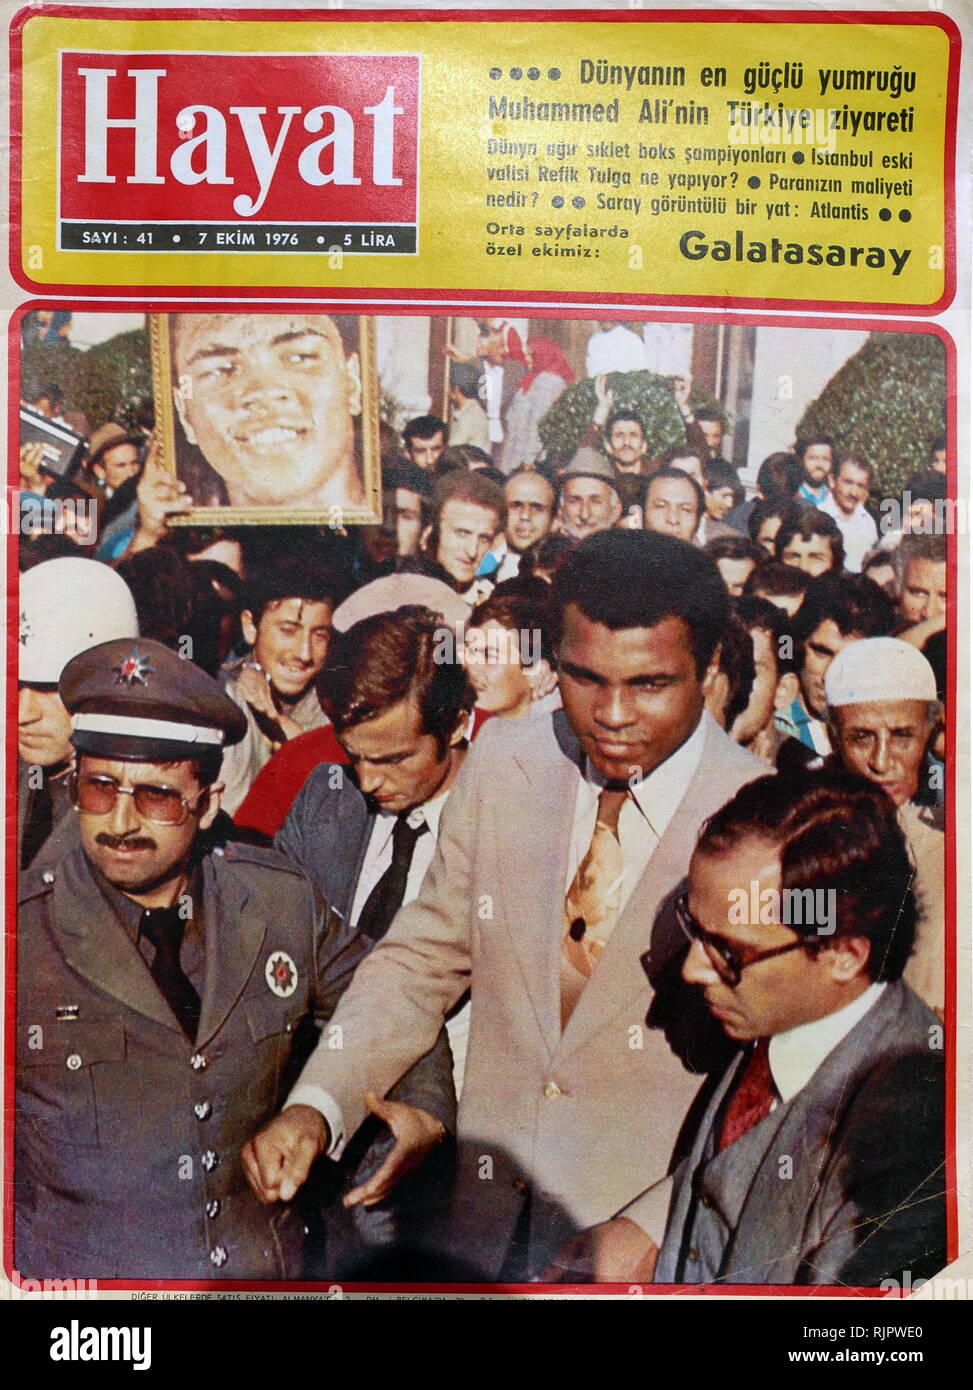 Turkish press coverage of the 1976, visit to Turkey by Muhammad Ali,(1942 - 2016). Ali was an American professional boxer and activist; He is widely regarded as one of the most significant and celebrated sports figures of the 20th century. Stock Photo